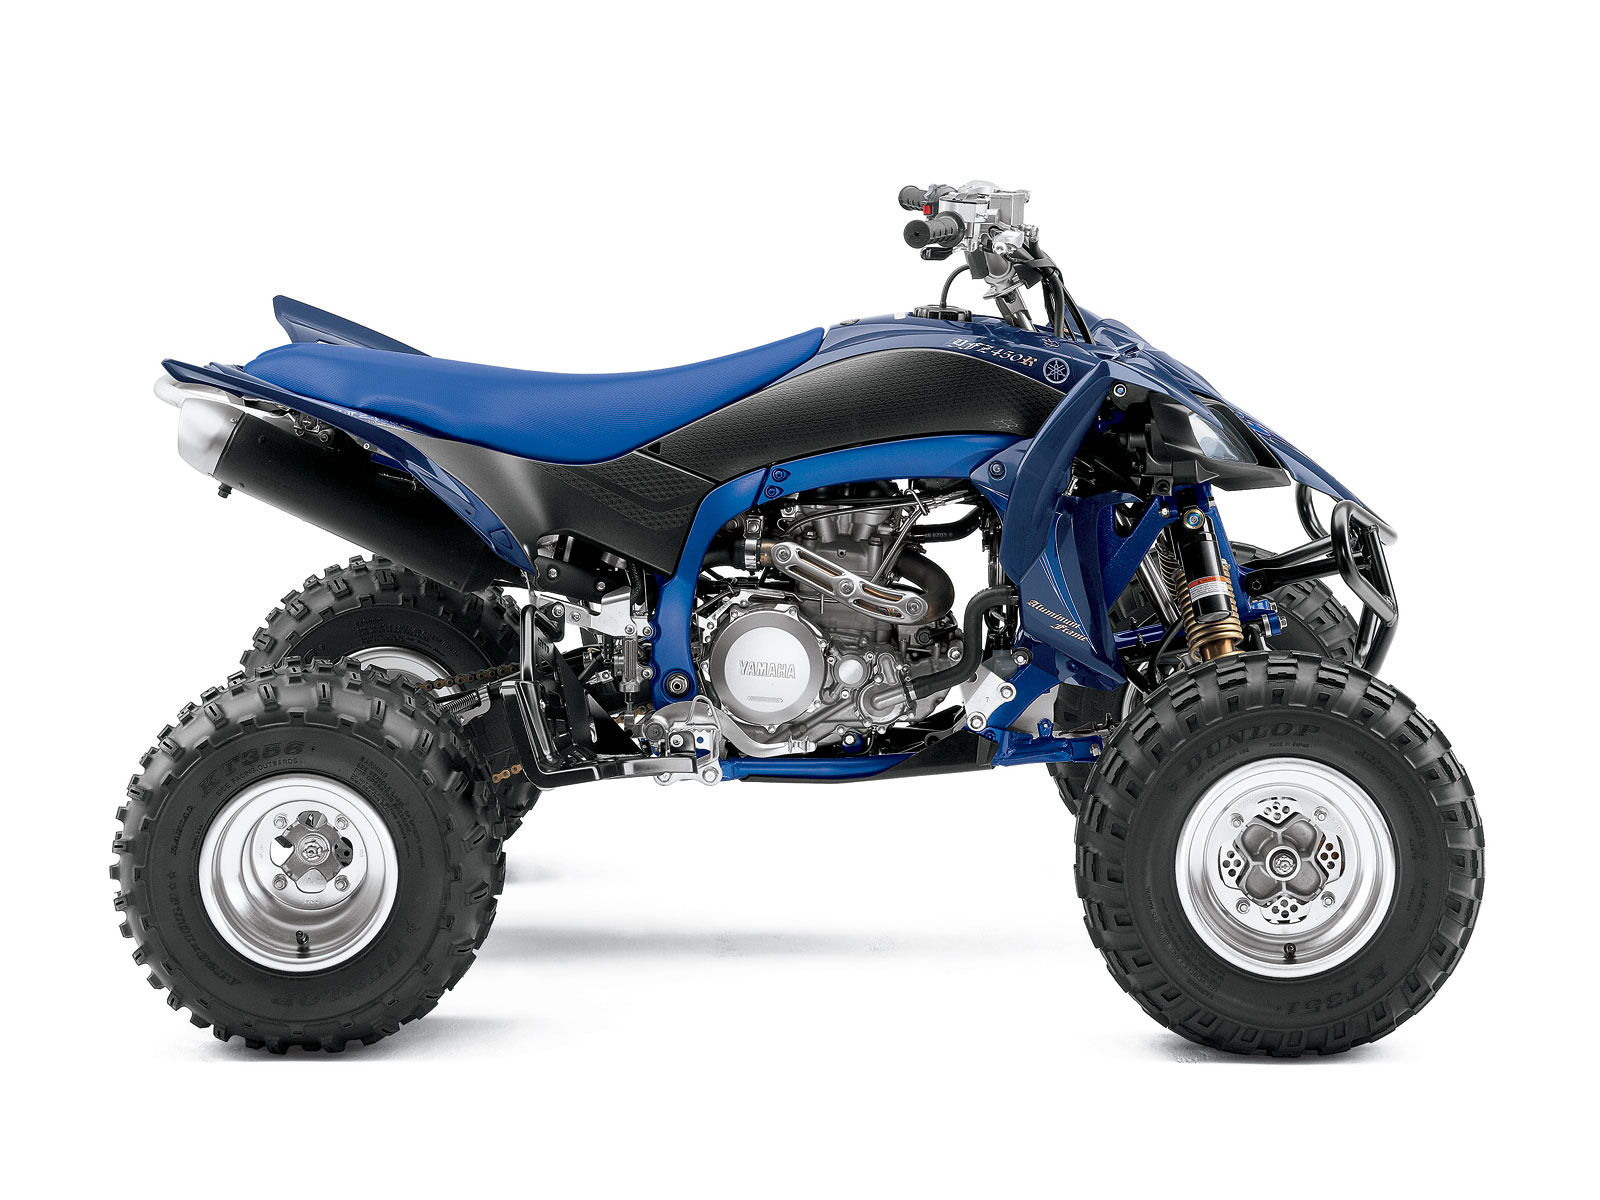 Yamaha Yfz450r Se Pictures And Specifications